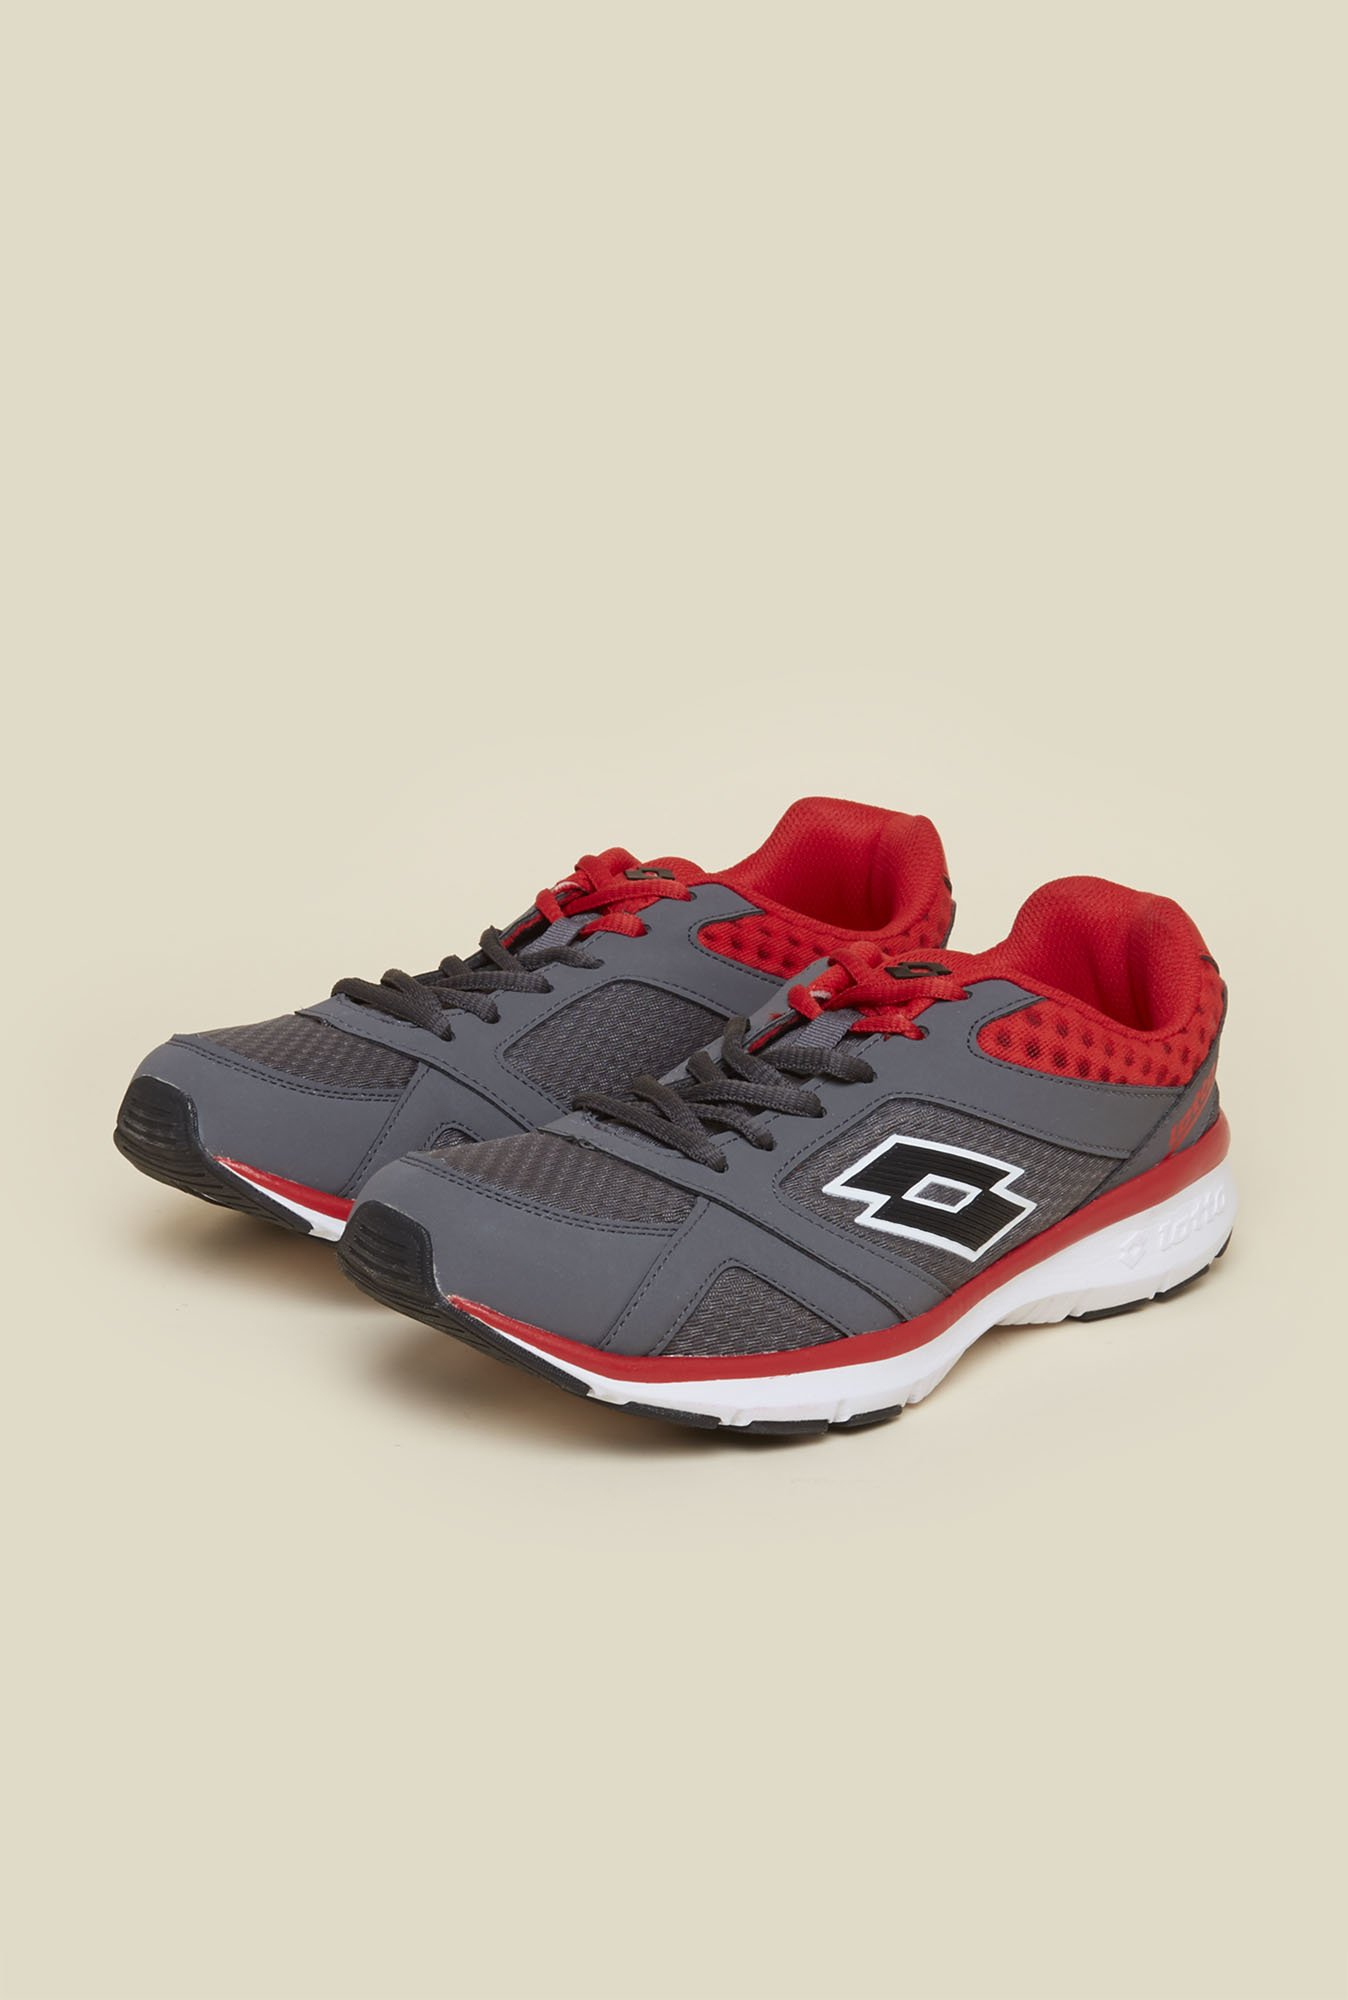 Lotto Sunrise III Grey & Red Running Shoes